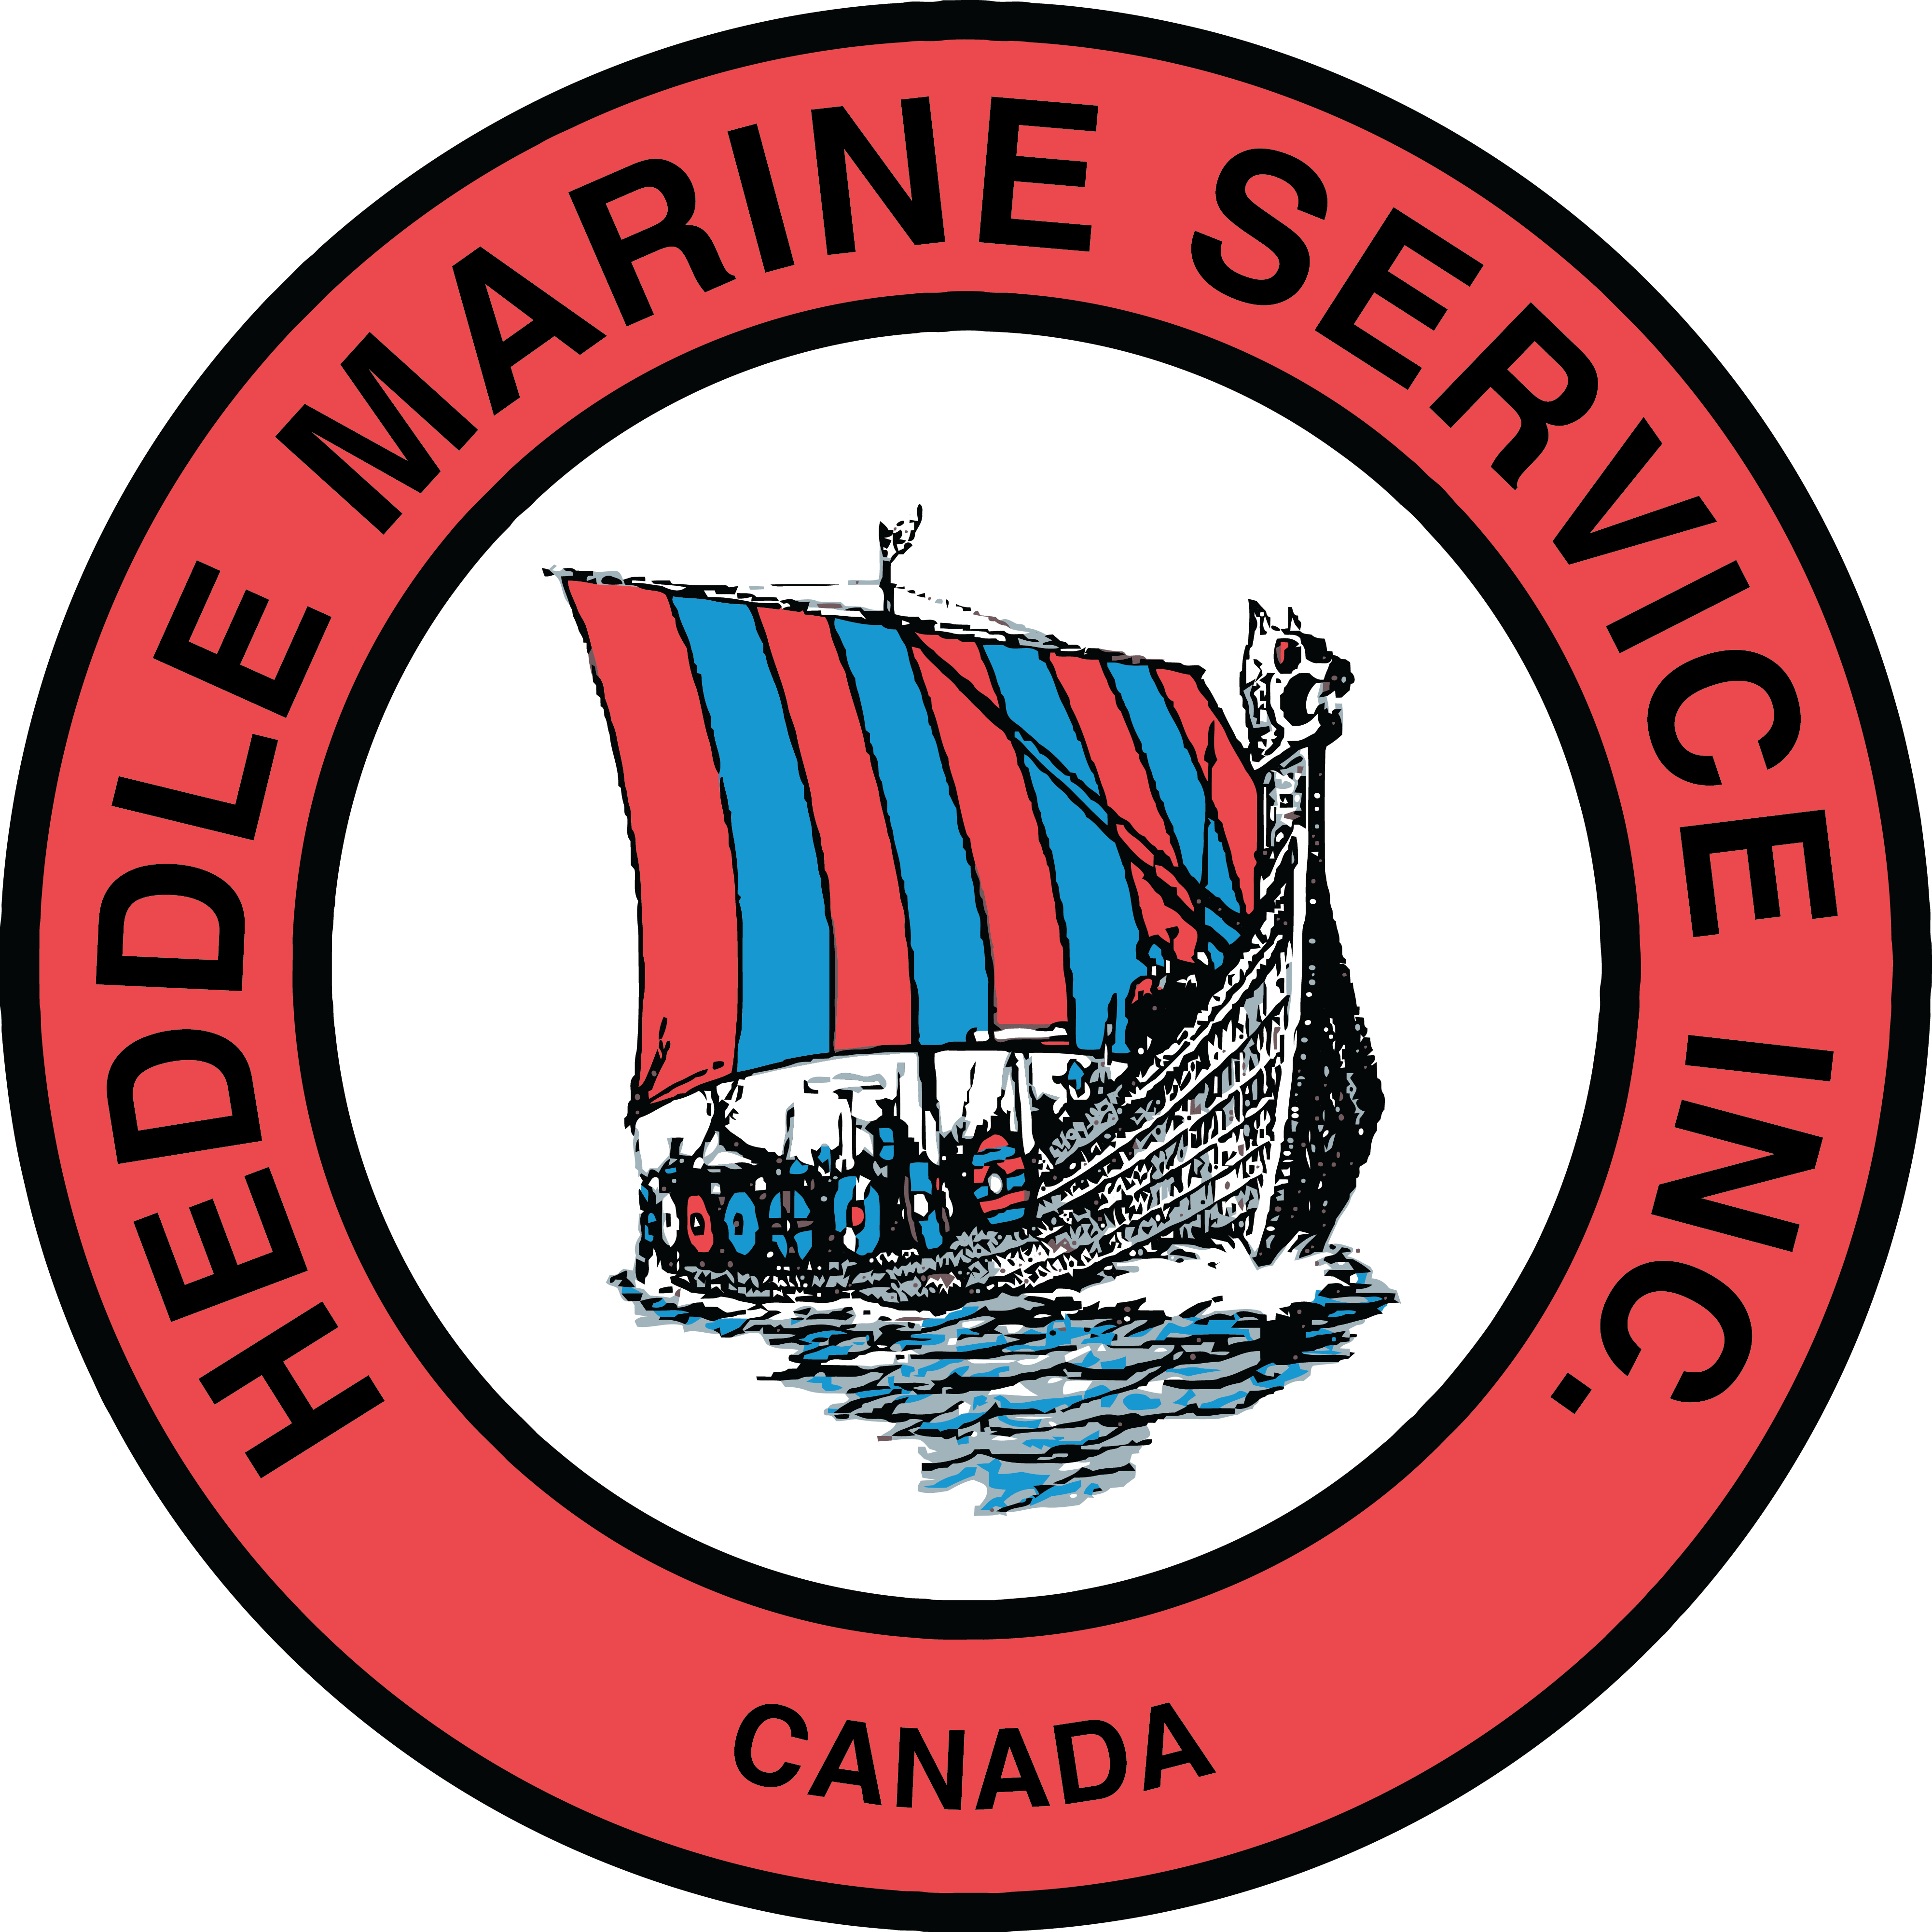 Heddle marine nl kicked. Driving clipart reckless driving